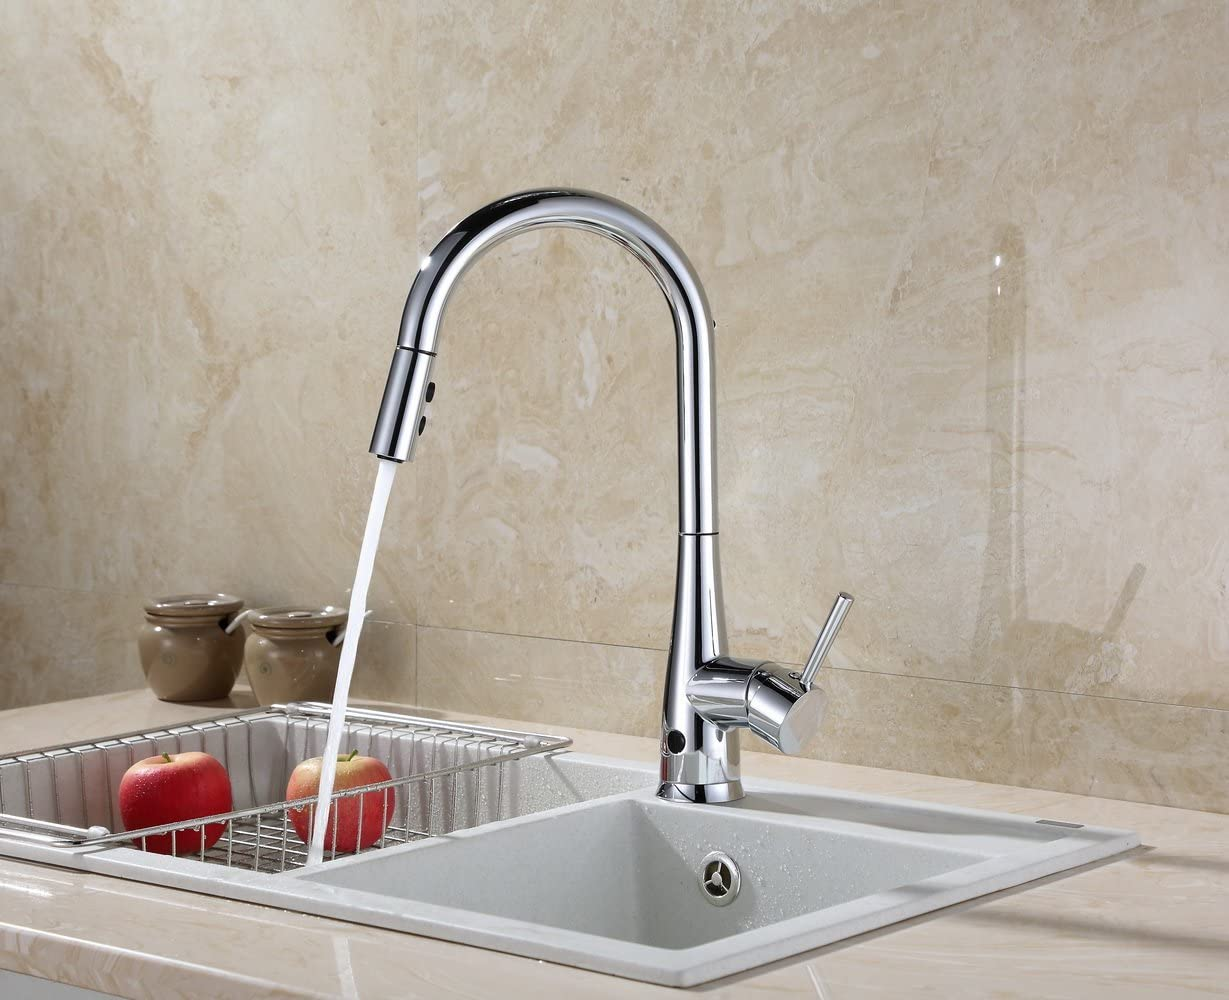 RunFine RF411002 Modern High Arc Best Commercial Pull Out Kitchen Faucets Chrome Stainless Steel Spout Dual-Mode Sensor Kitchen Sink Faucet with Pull down Sprayer